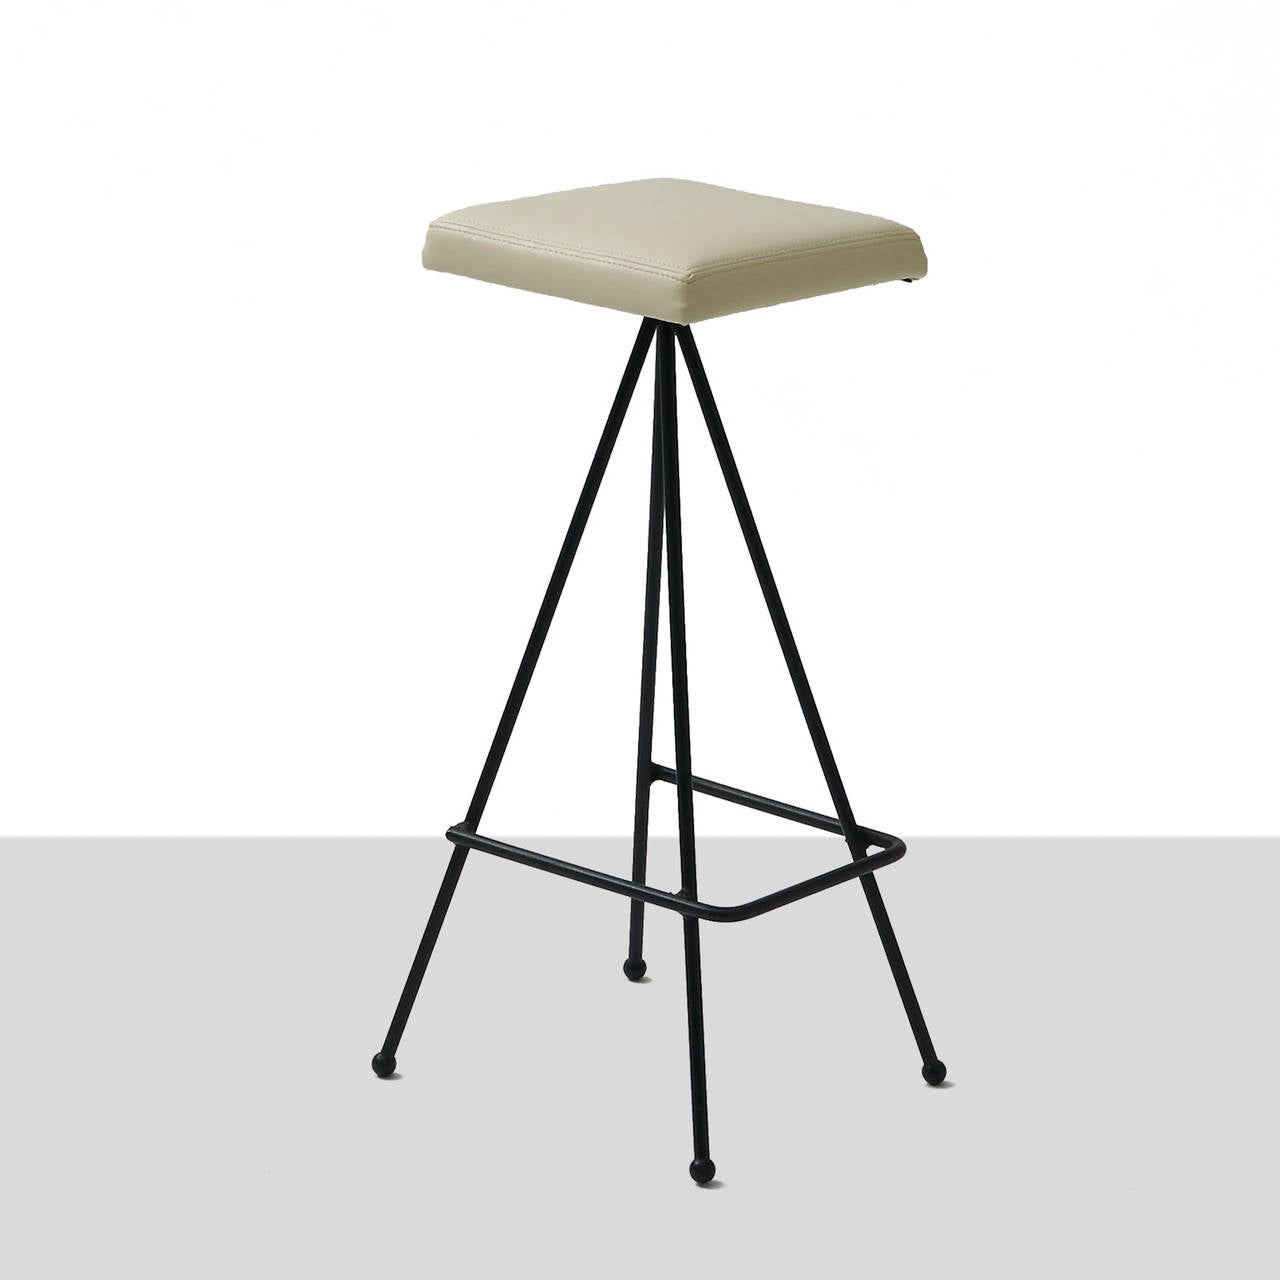 Adrian Pearsall 11 Bar Stools For Sale At 1stdibs